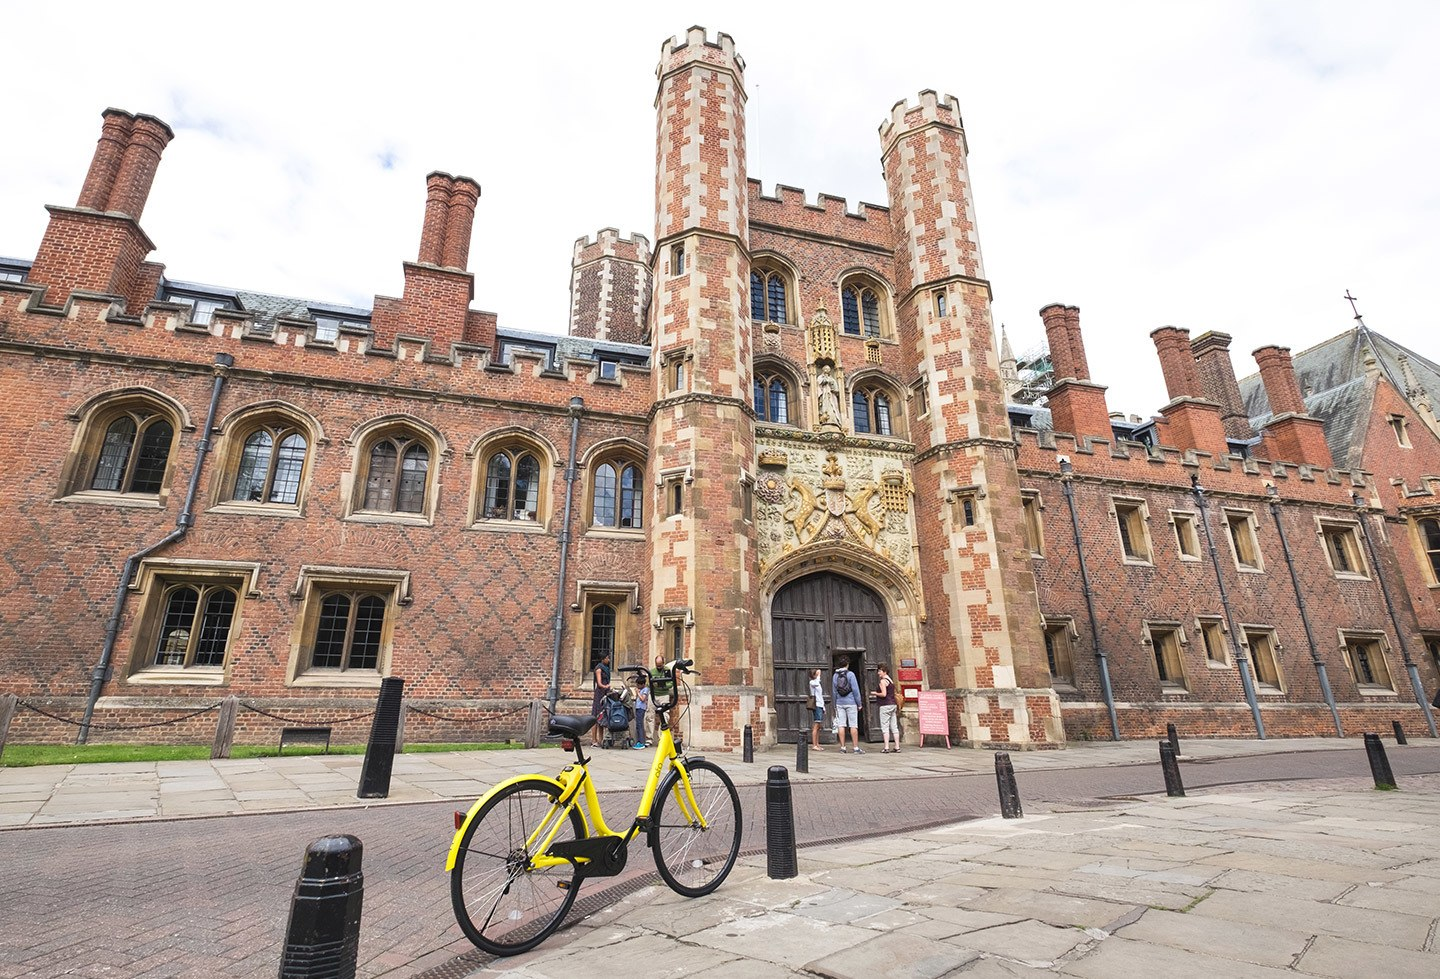 Cycing among the colleges in Cambridge